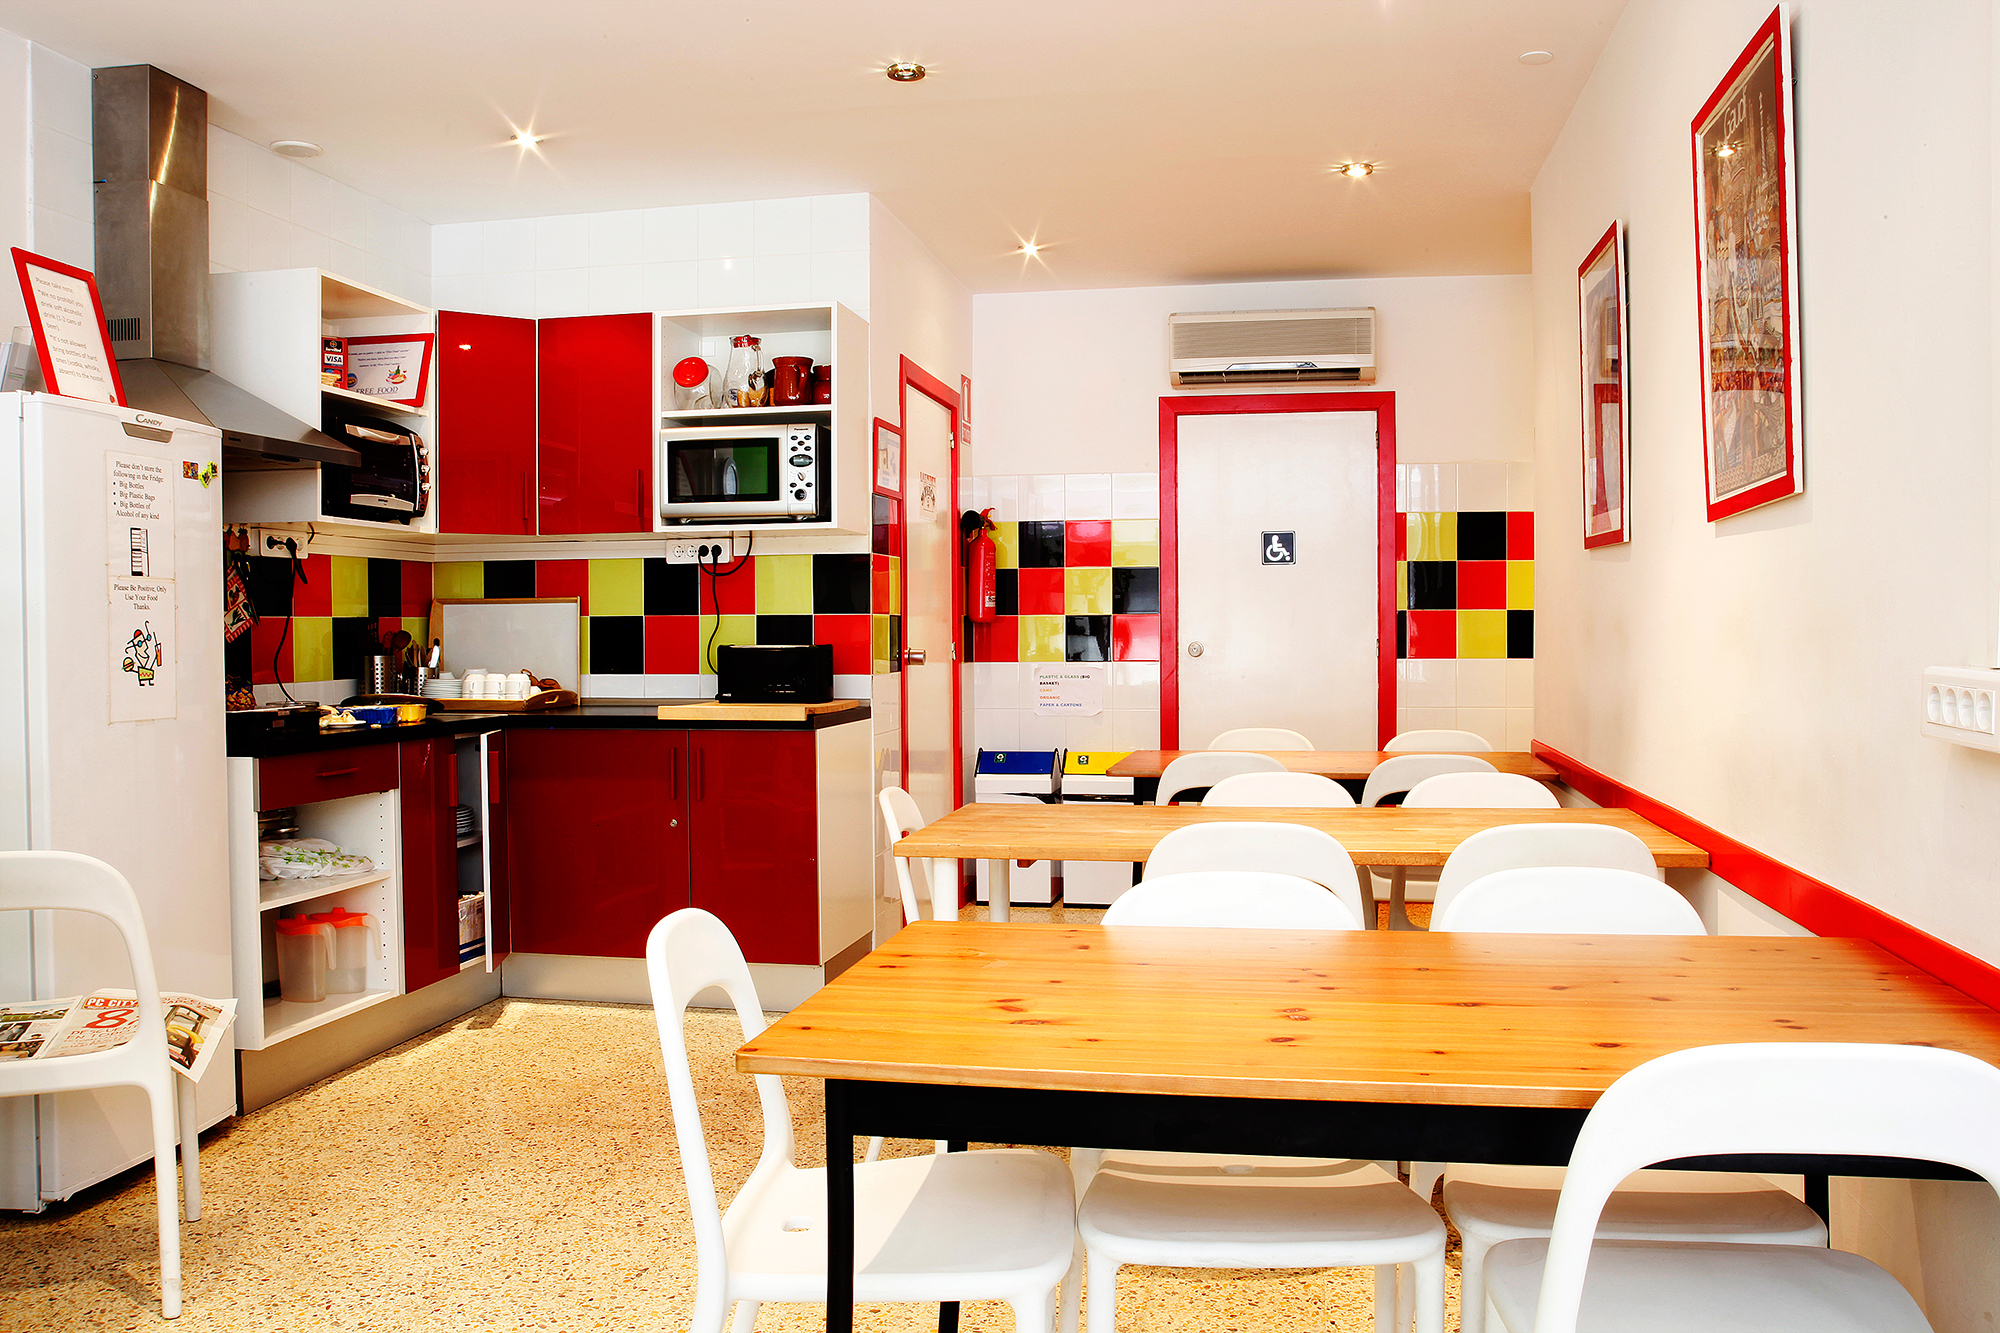 Let the kitchen at the hostel set the stage of your holiday meal. Photo courtesy O Barcelona.